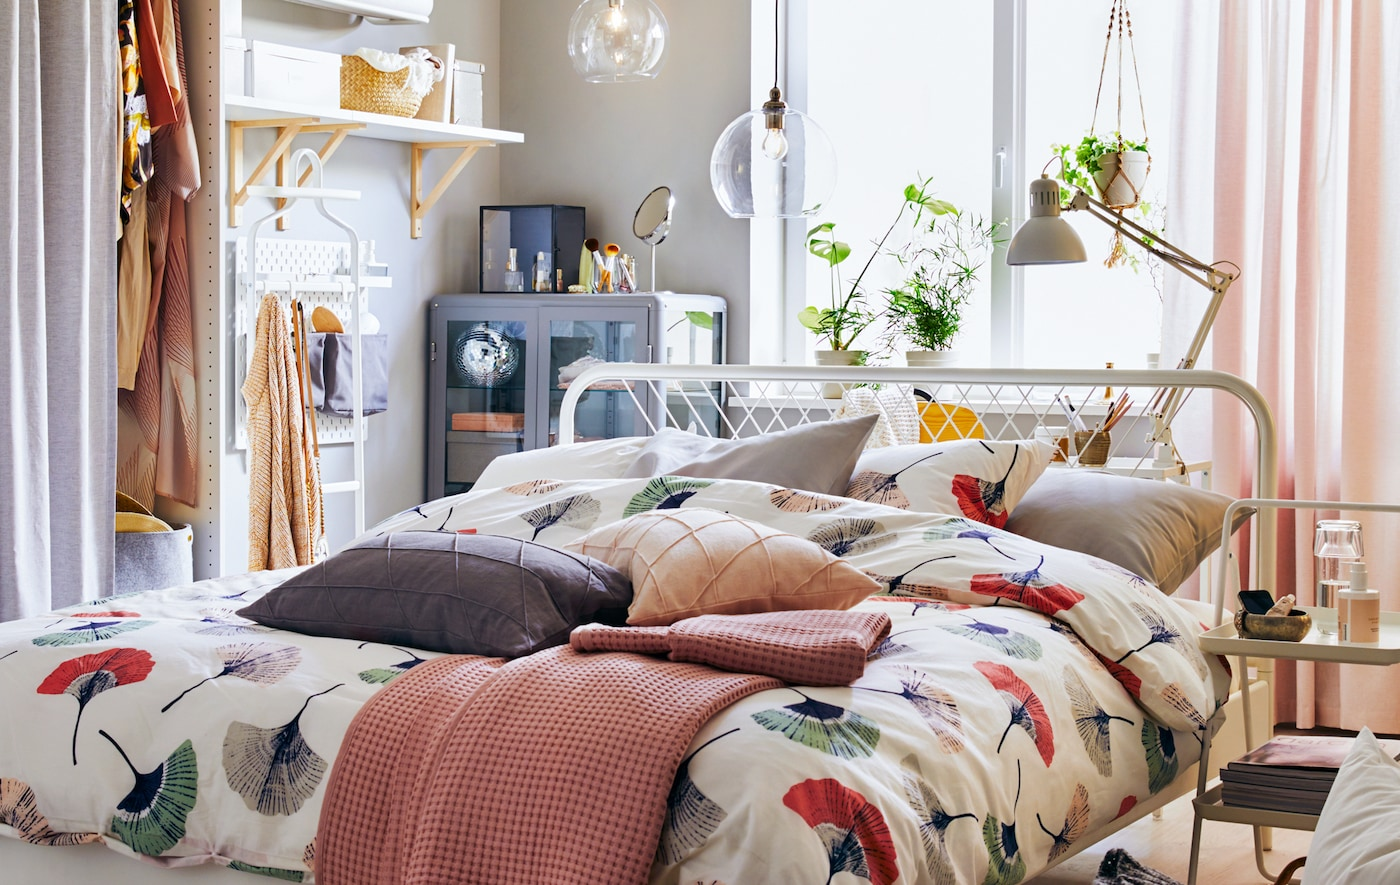 Decor ideas from a small one-room home - IKEA